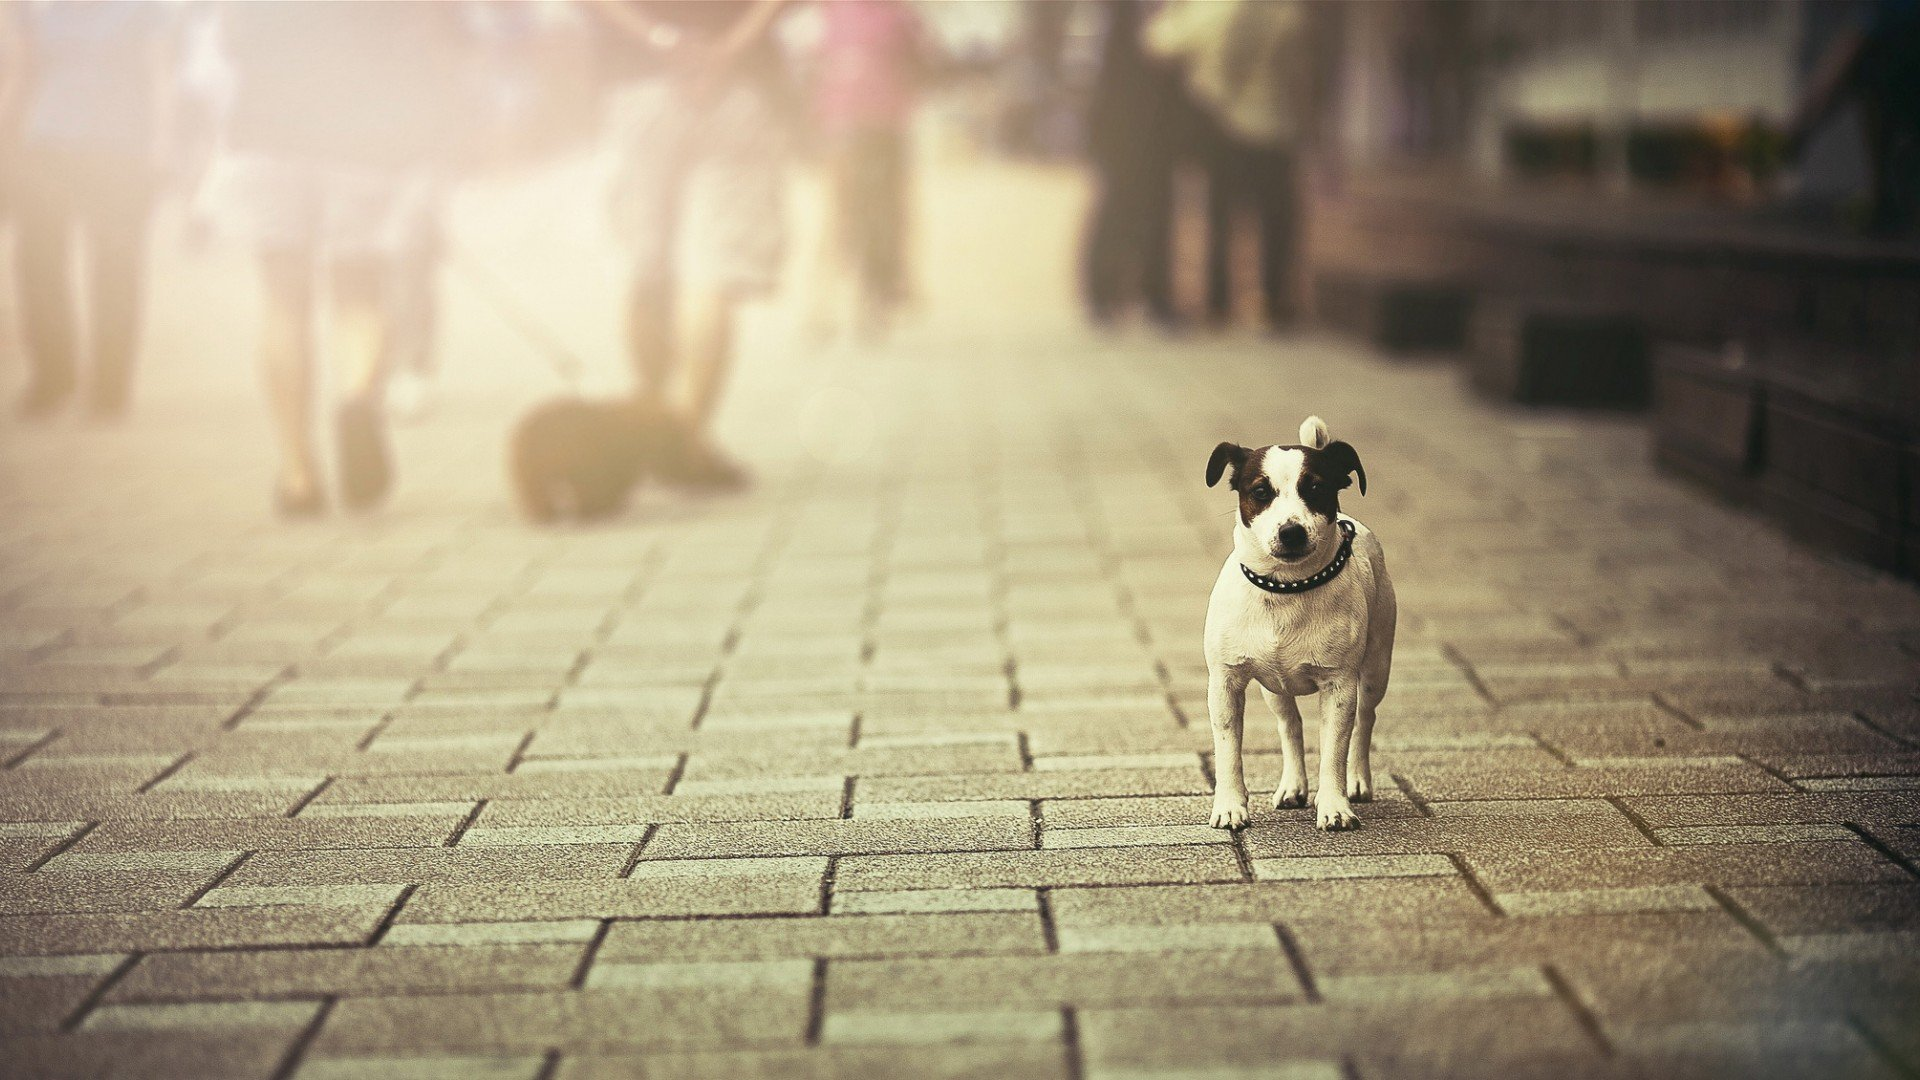 Pet Supplies for pet lovers everywhere! Pet Street Mall is the only place you need for your pet supply needs. We only offer pet accessories of the highest quality for the Lowest Prices. And, on each order over $50 within the continental US, we'll ship for FREE!